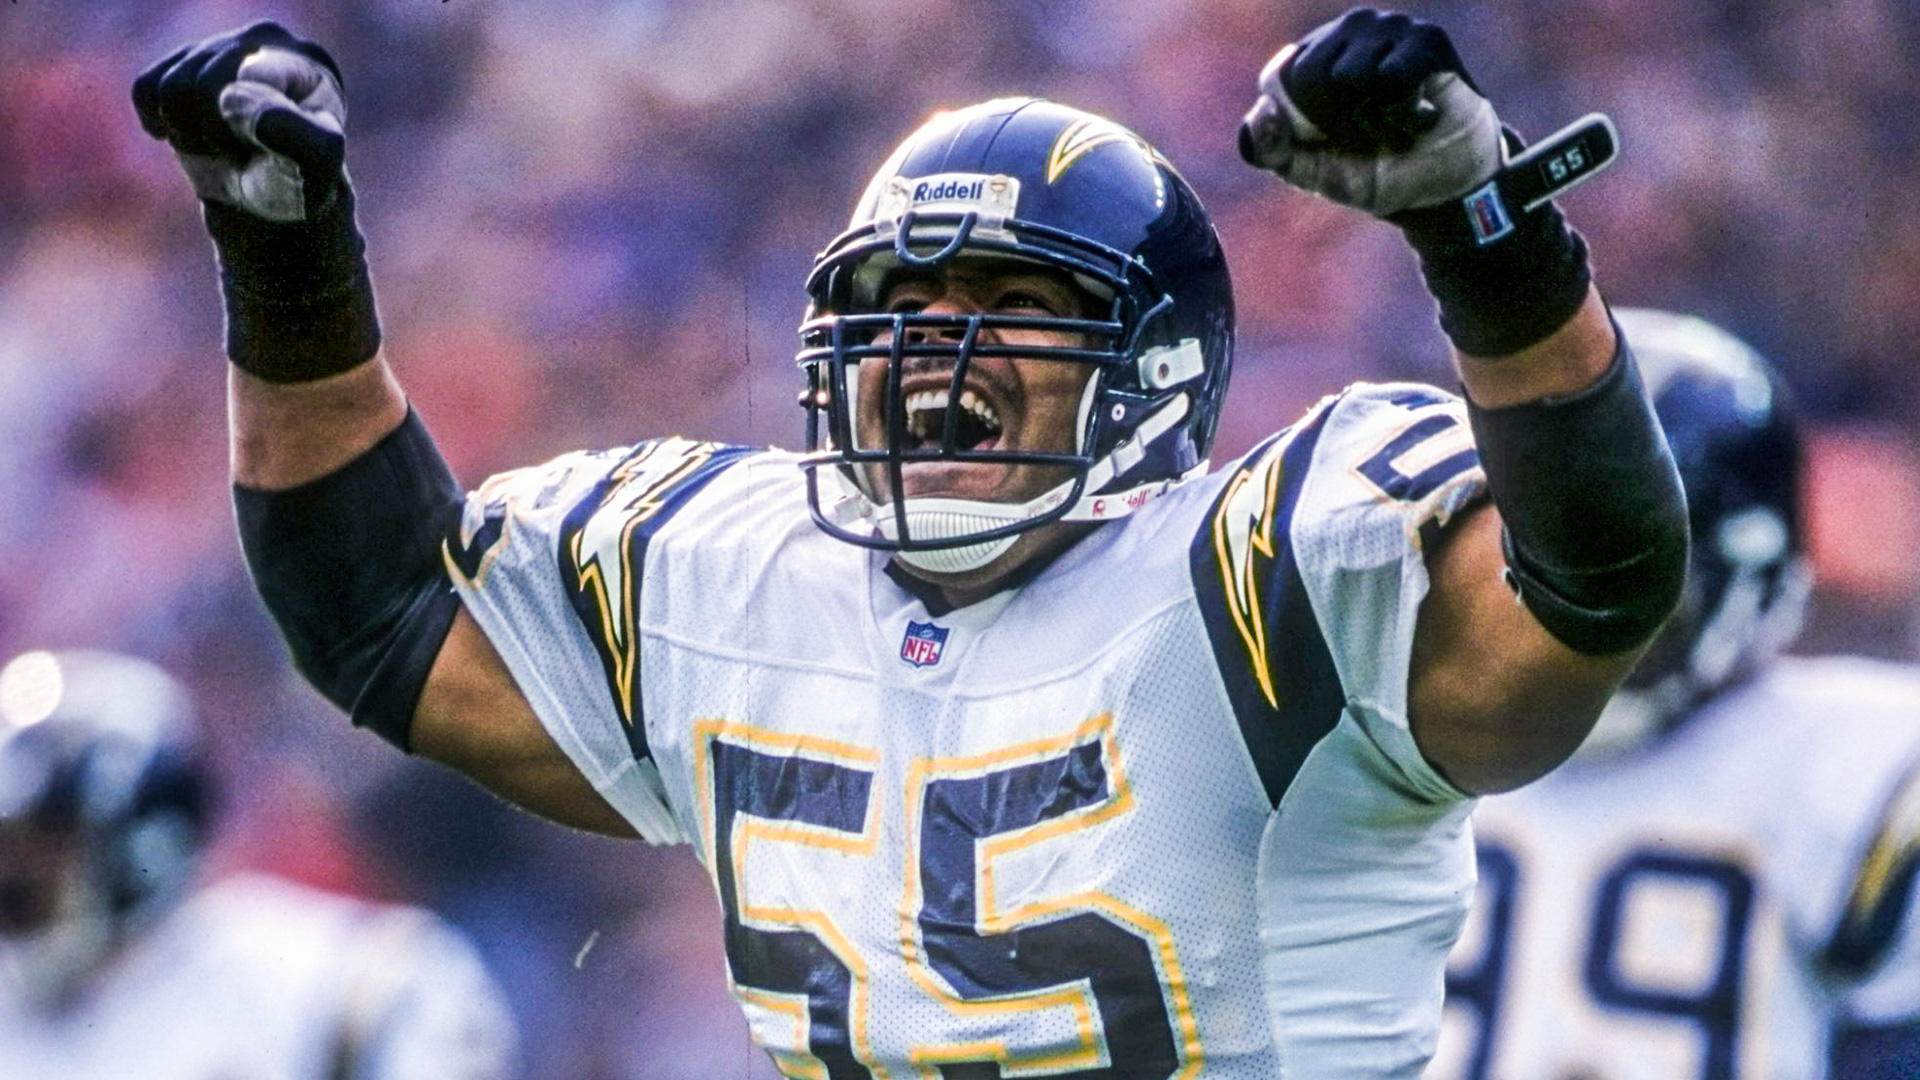 Junior Seau's eight career-defining moments   Sporting News